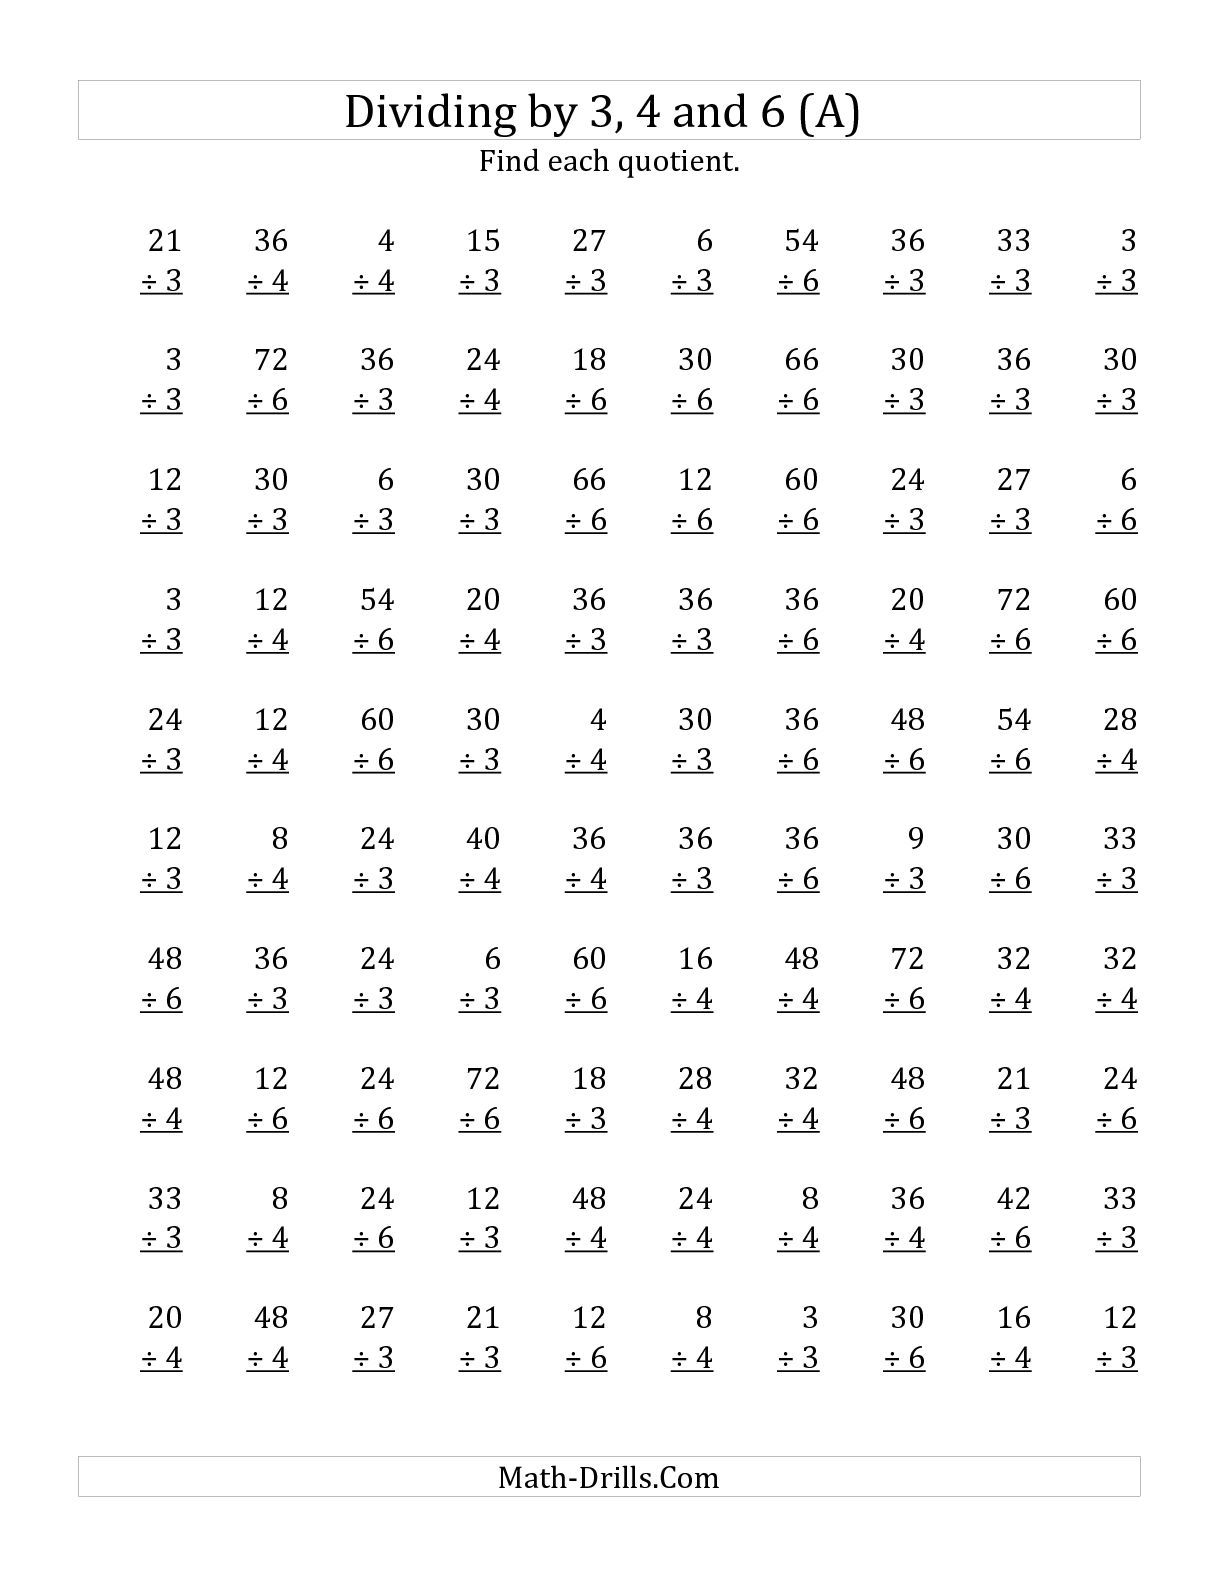 The Dividing by 3, 4 and 6 (Quotients 1 to 12) (A) math